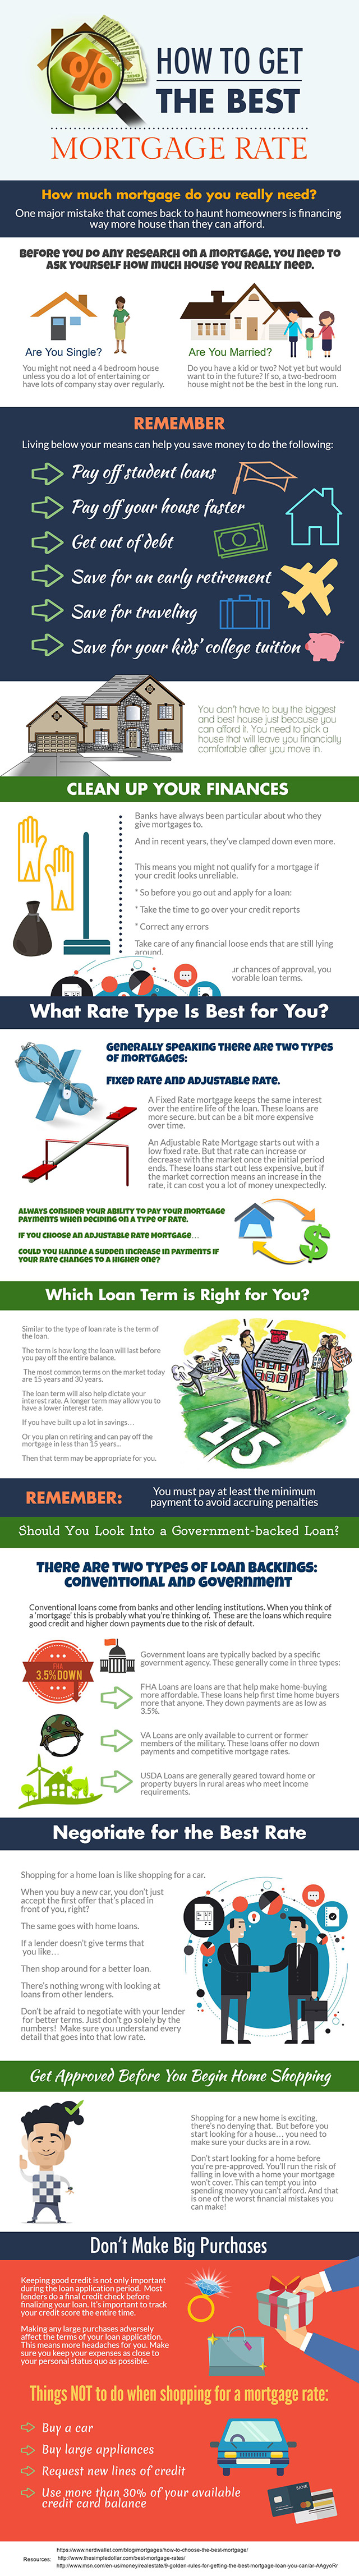 How To Get The Best Mortgage Rate - Infographic